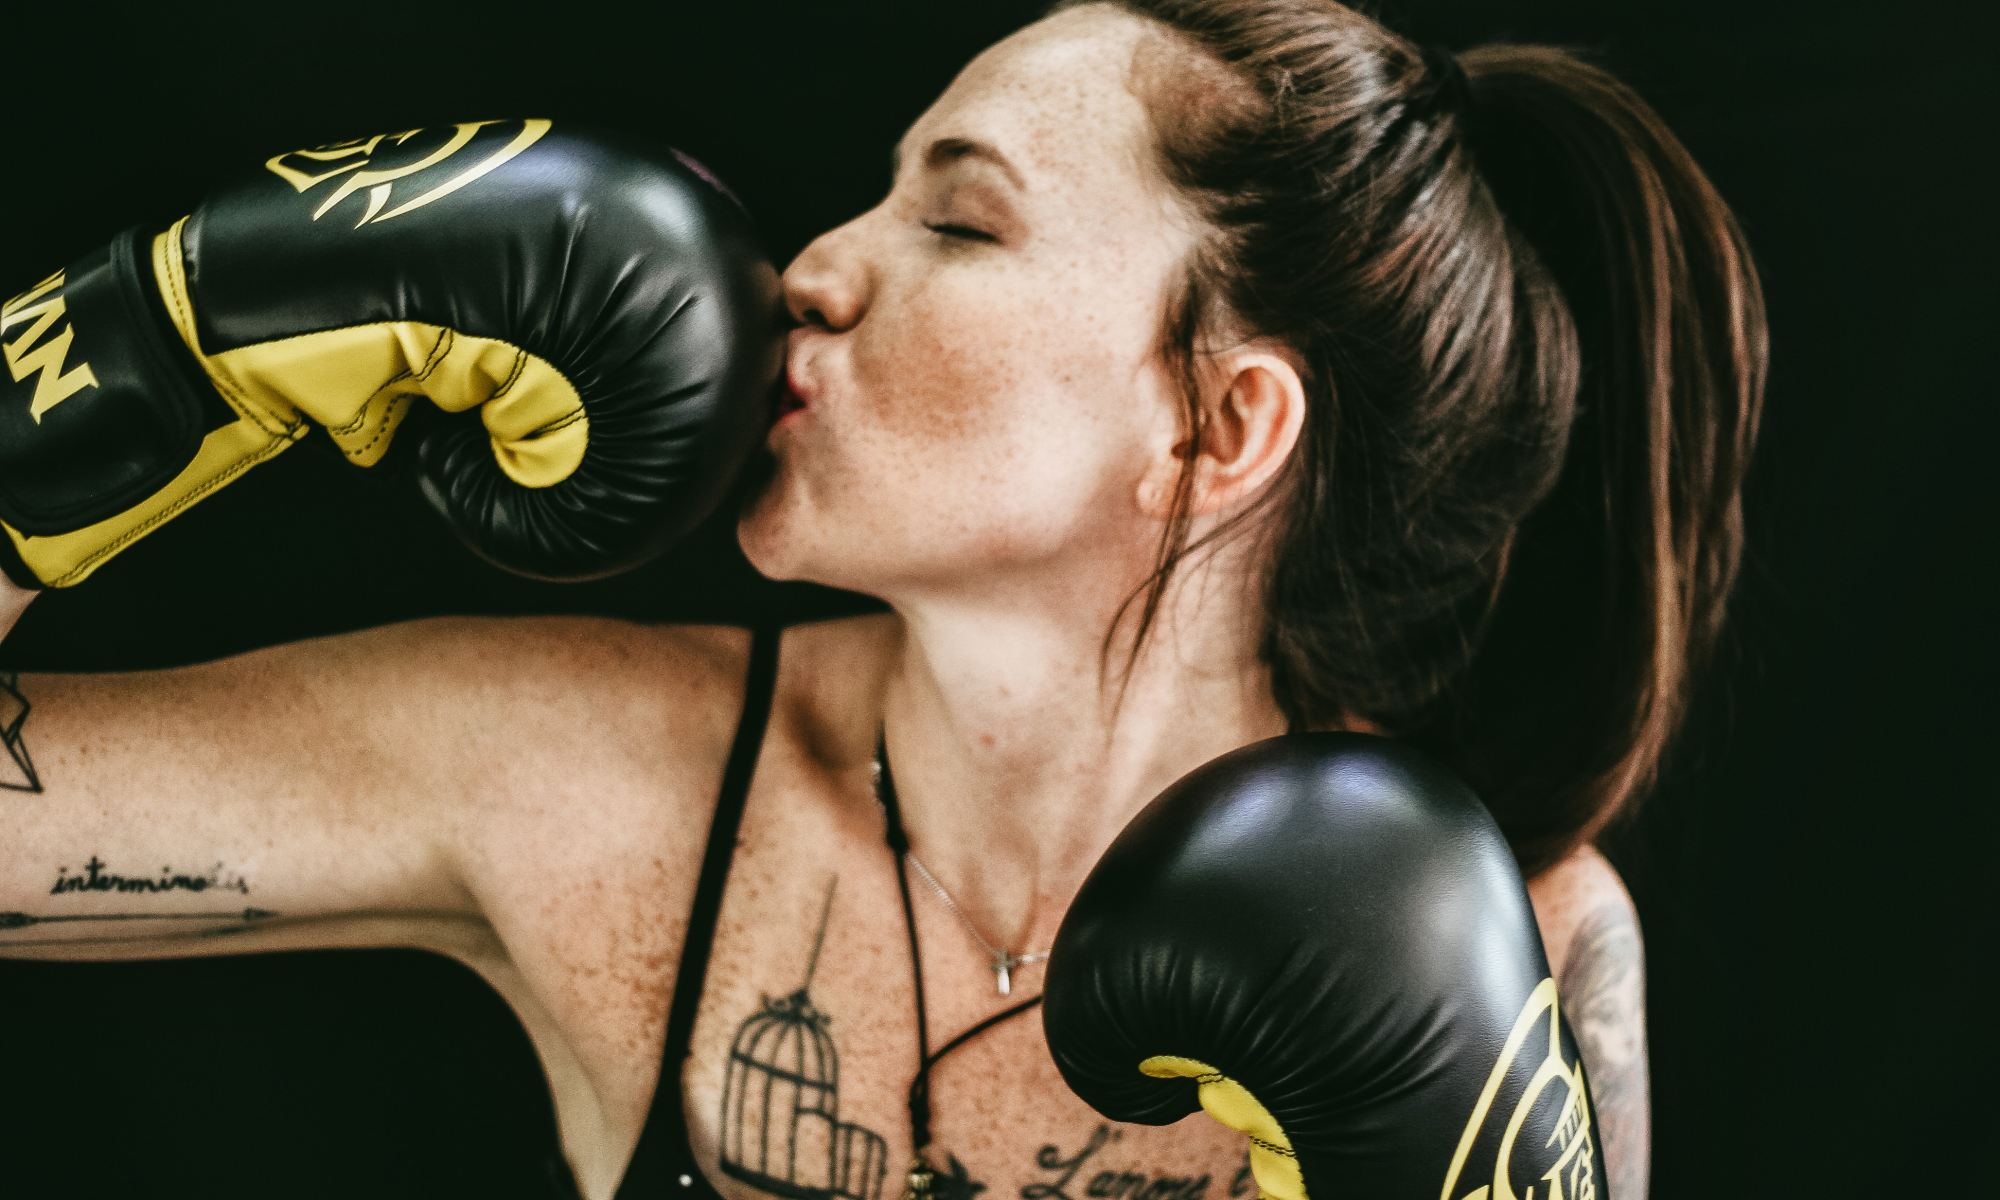 Successful woman with strong beliefs kissing black leather boxing gloves